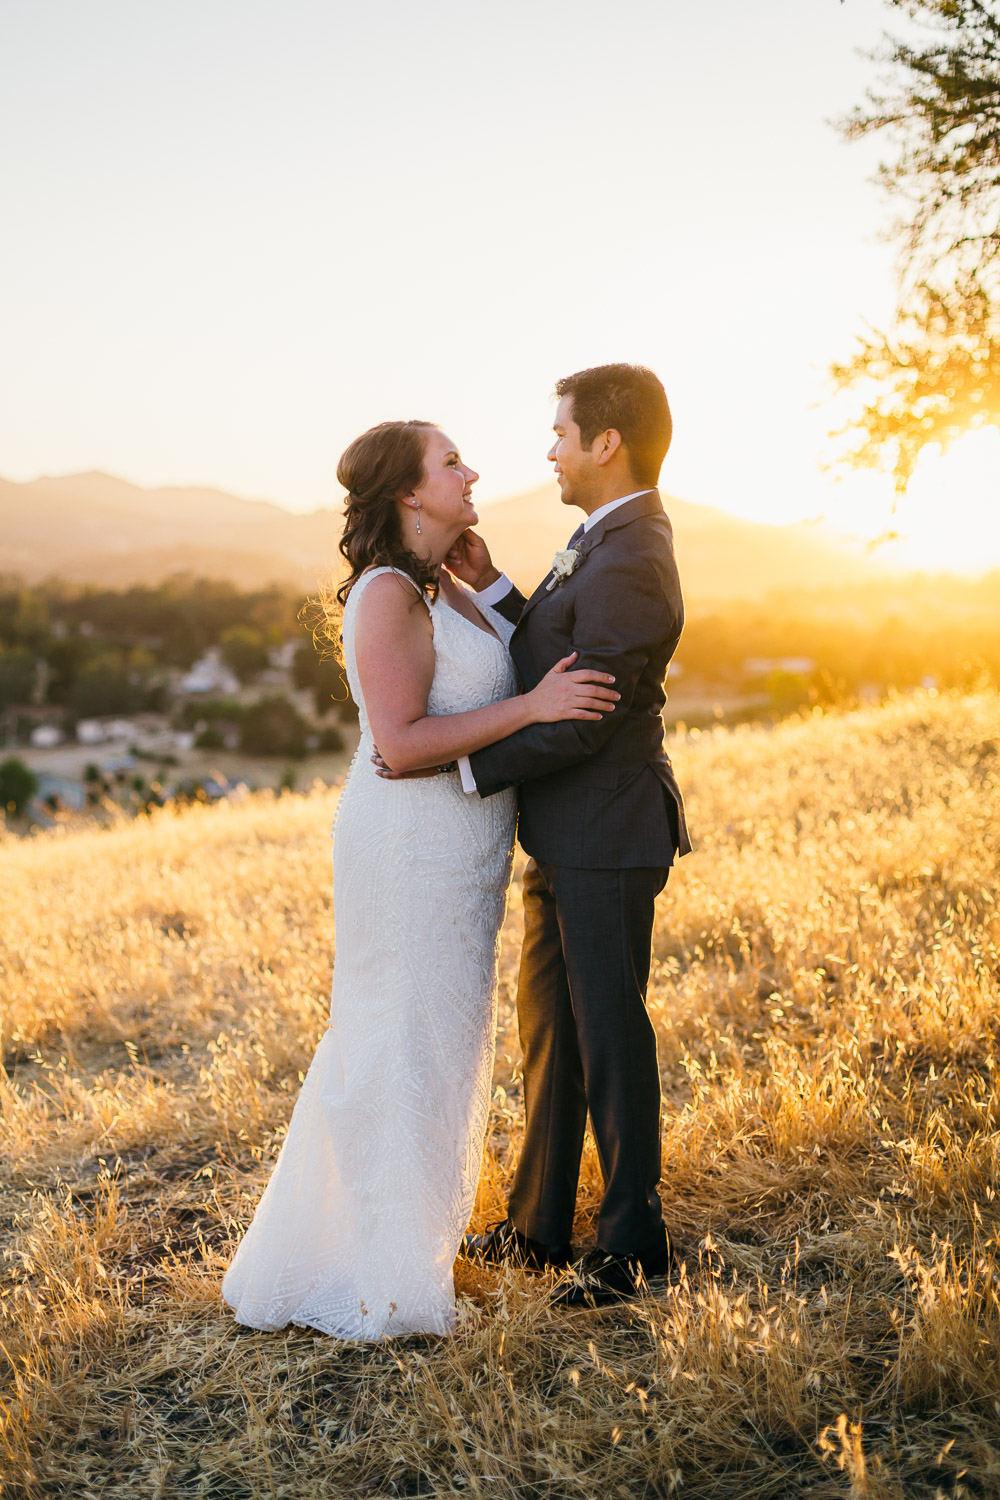 Best-Paso-Robles-California-Wedding-Photographer-335.jpg